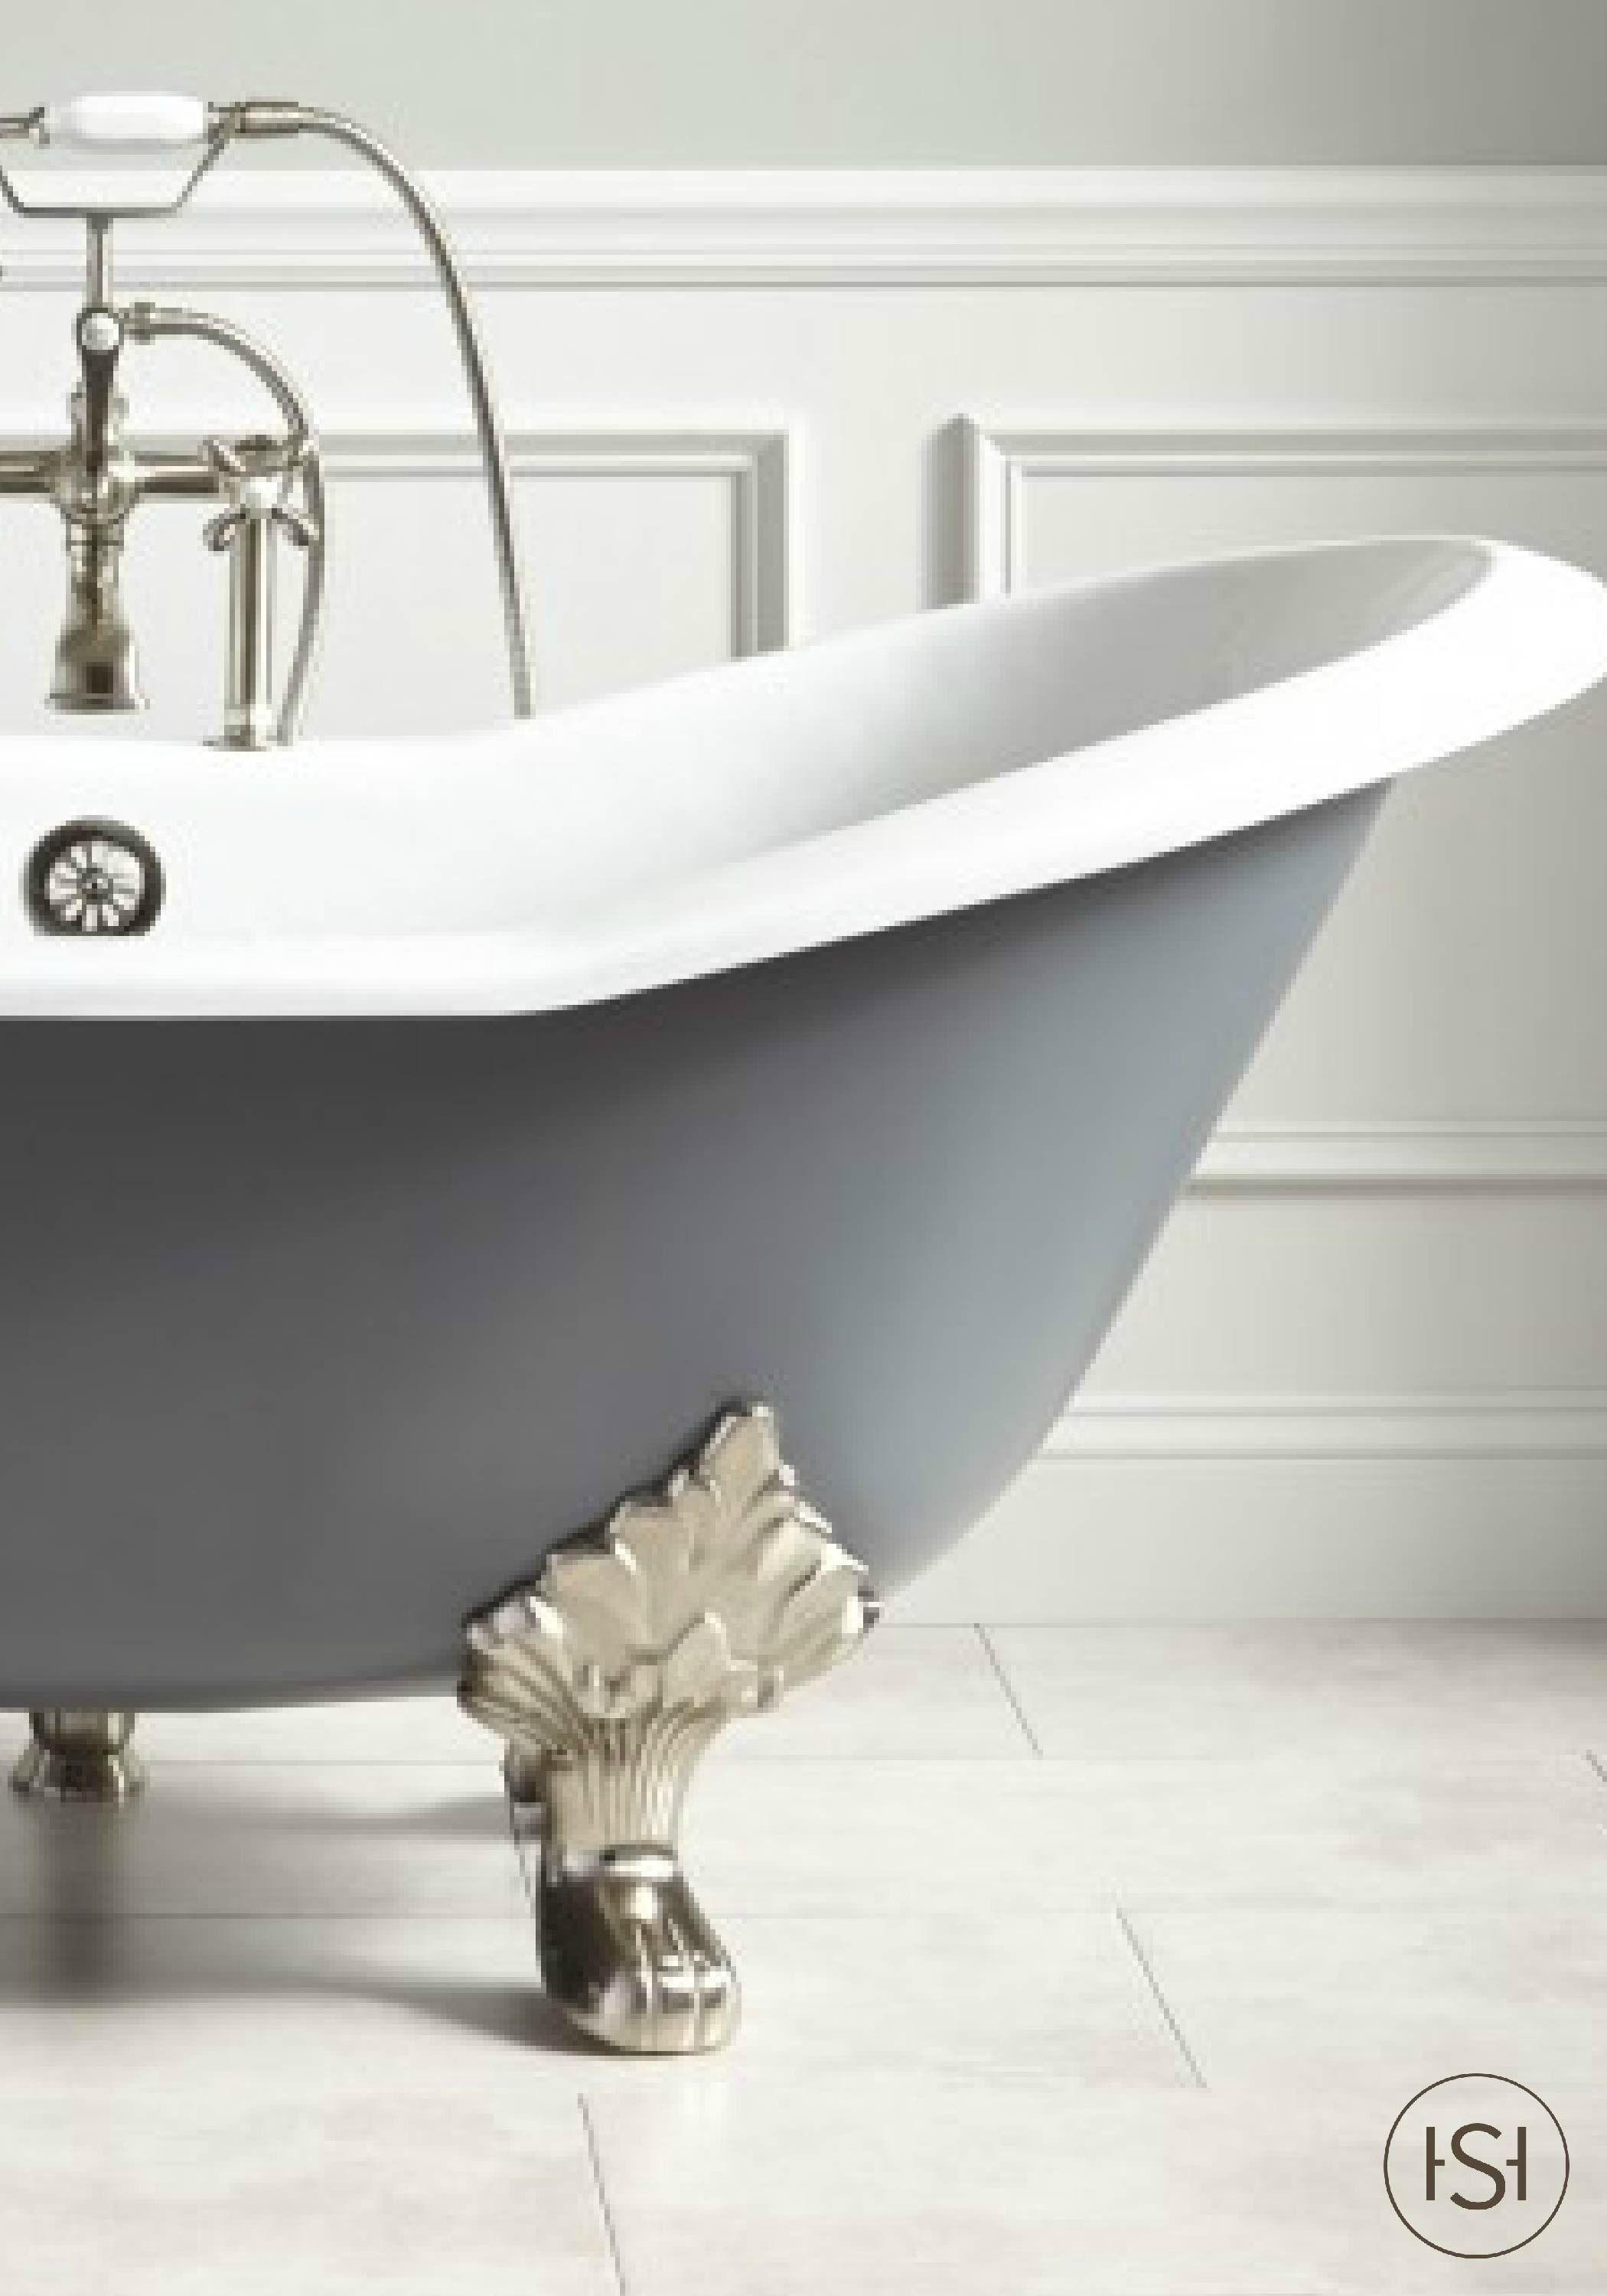 A Painted Bathtub Can Add Instant Personality And Style To Your